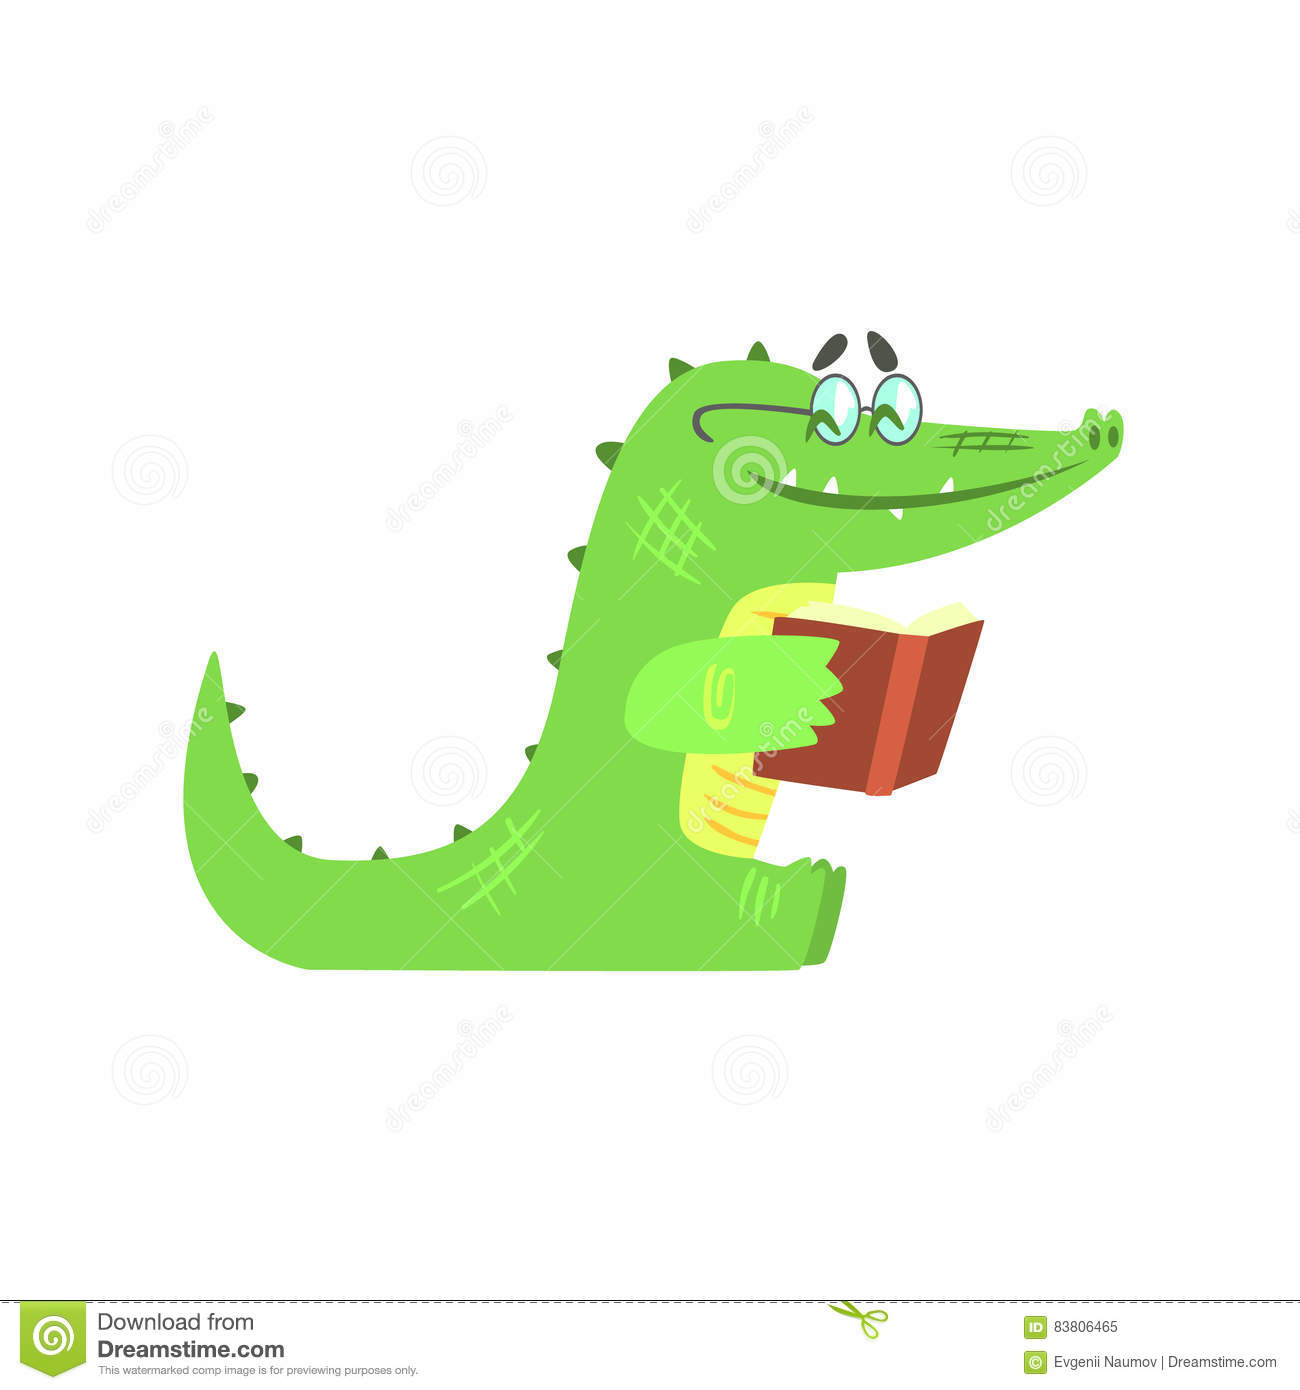 crocodile reading a book   humanized green reptile animal character every day activity stock